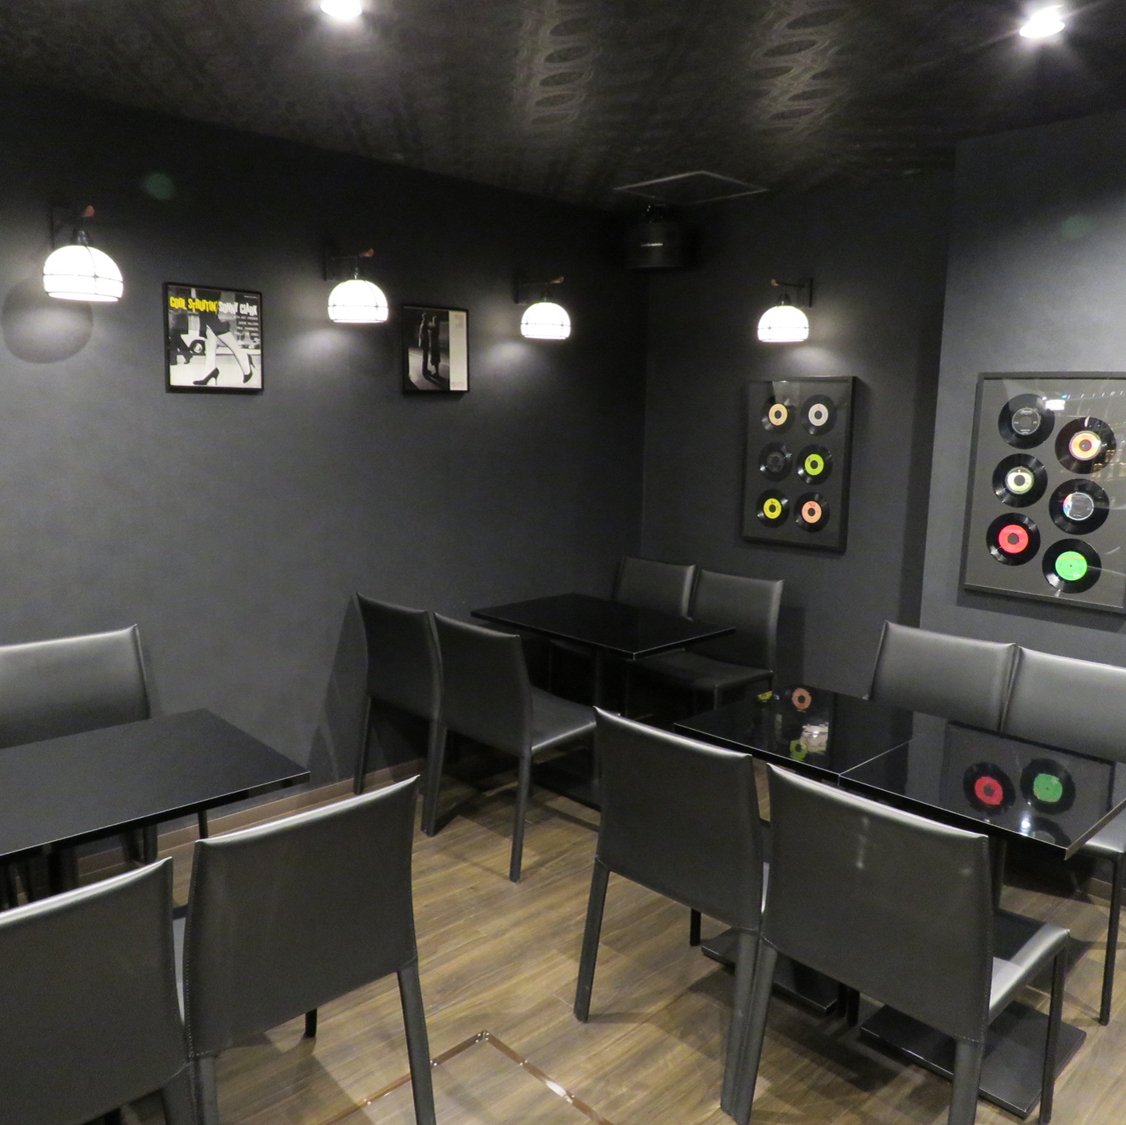 【Relax relaxingly】 You can enjoy your favorite drink and meal slowly at the spacious table seat.